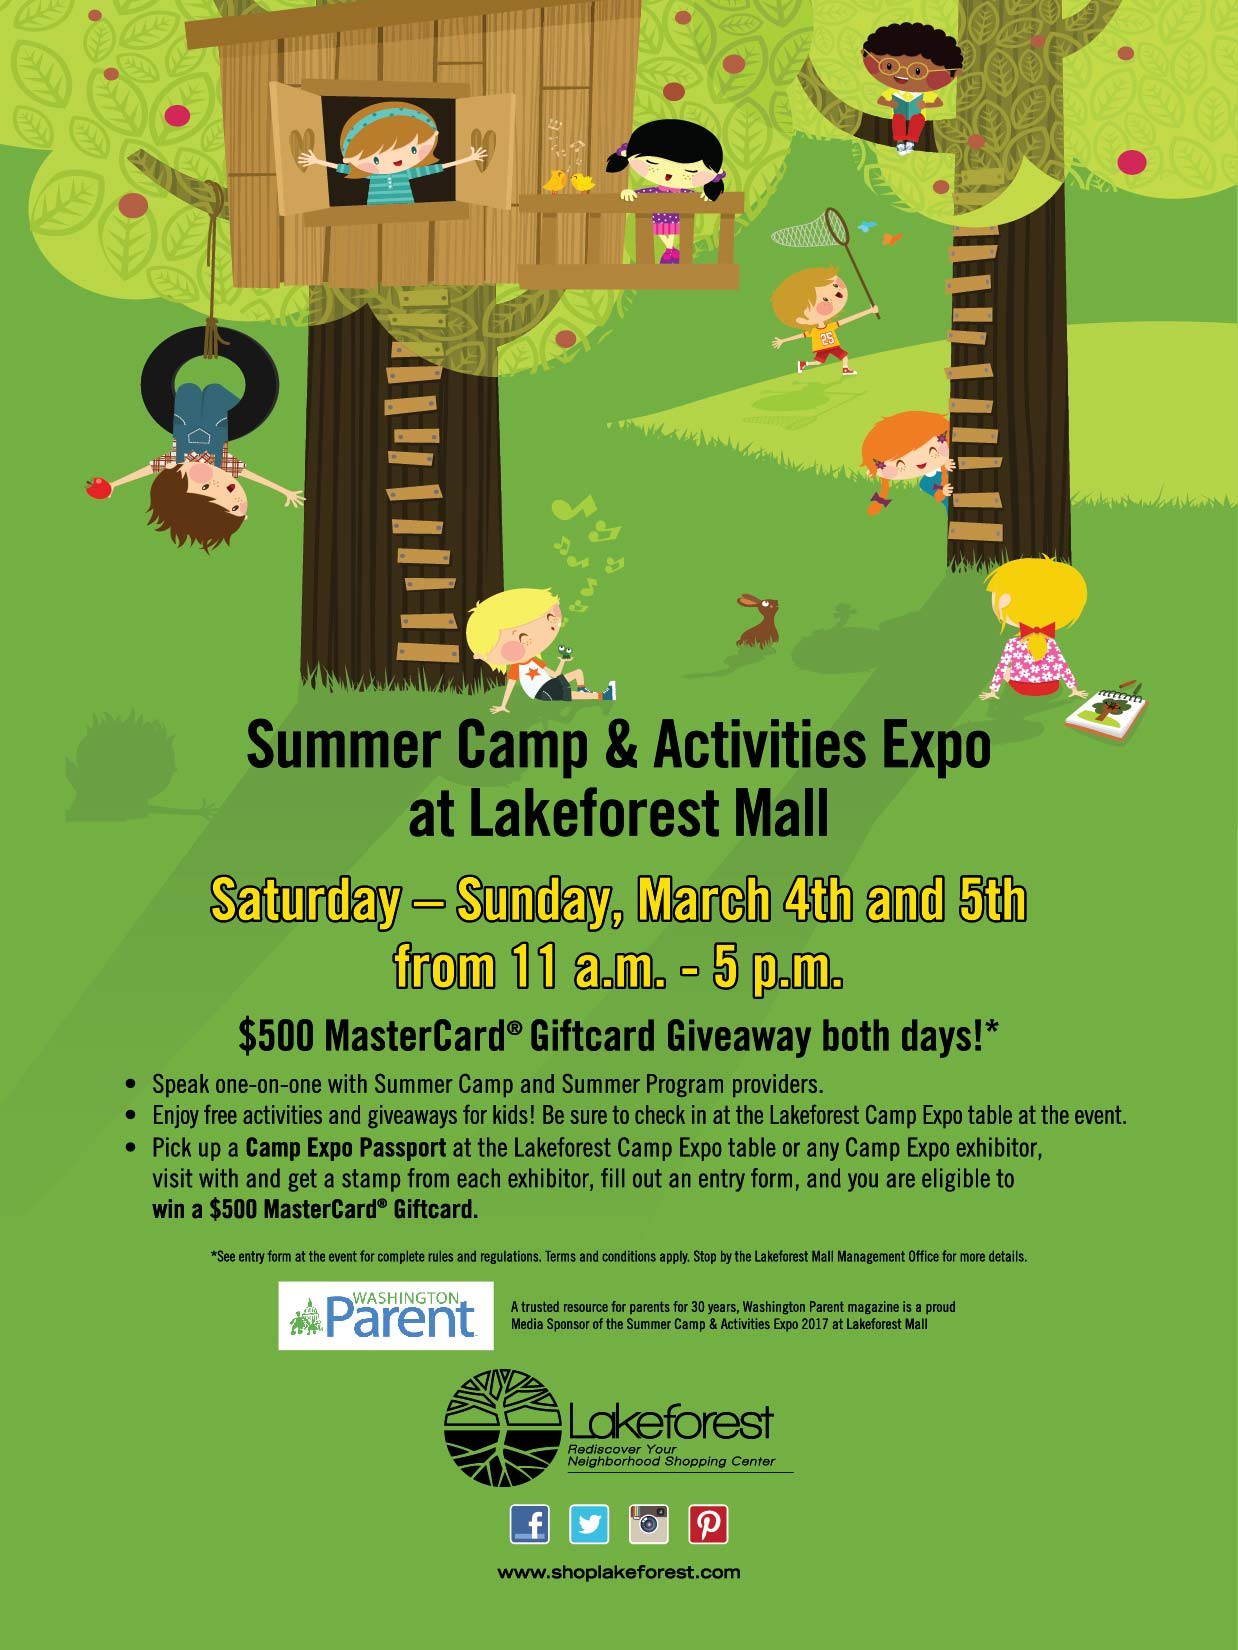 http://www.shoplakeforest.com/event/summer-camp-and-activities-expo/2145407761/